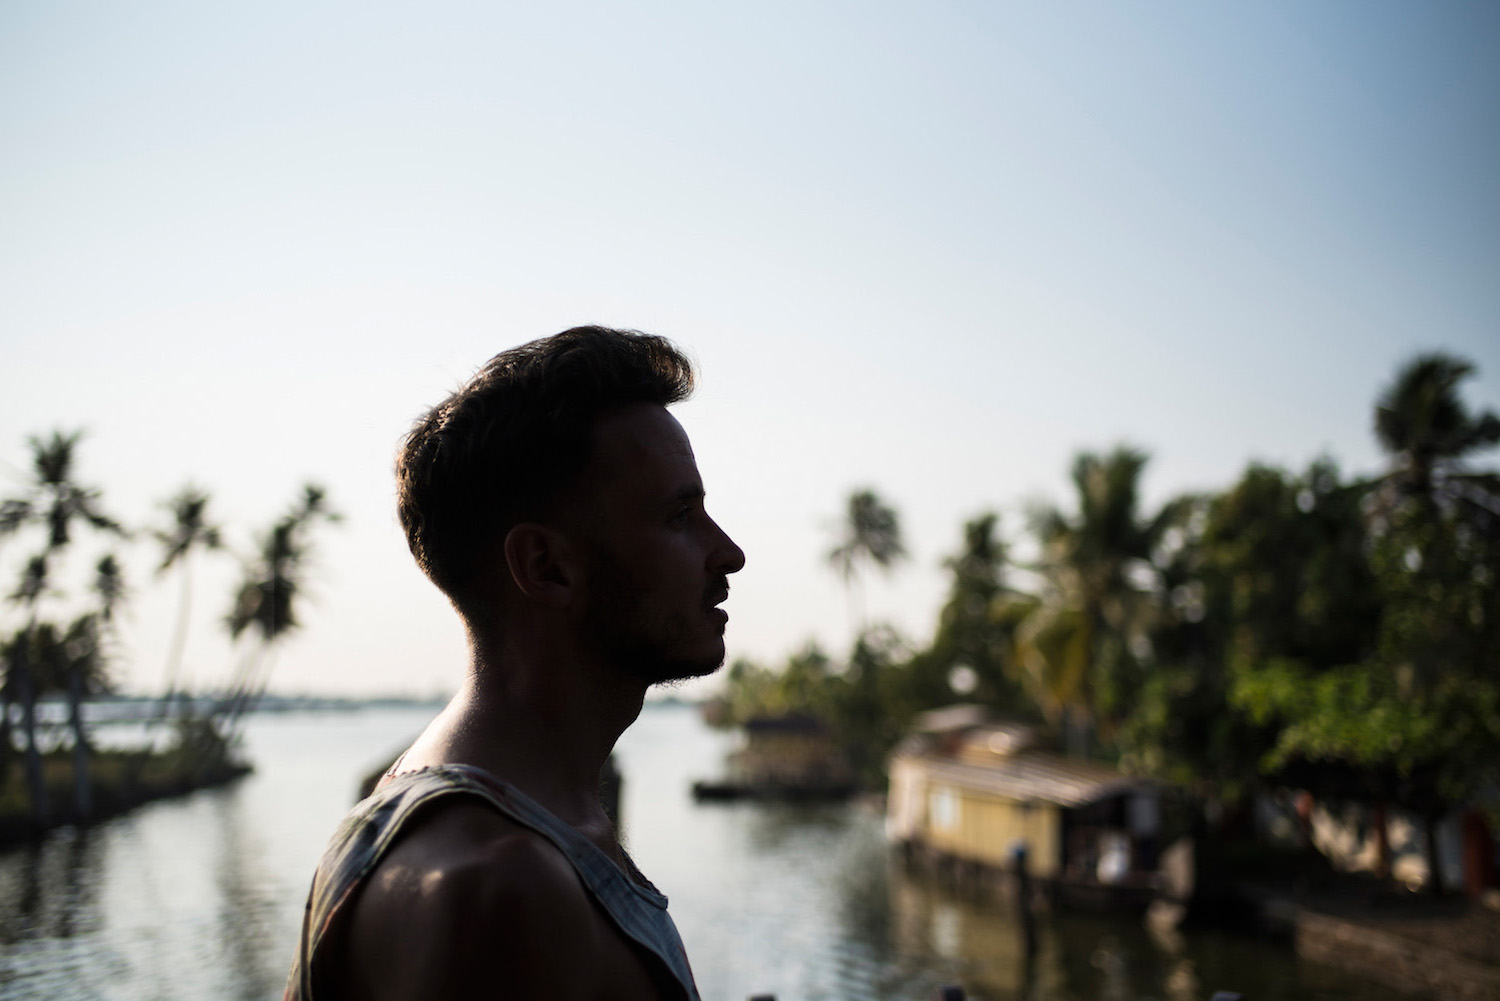 Robert Schrader in the Kerala Backwaters